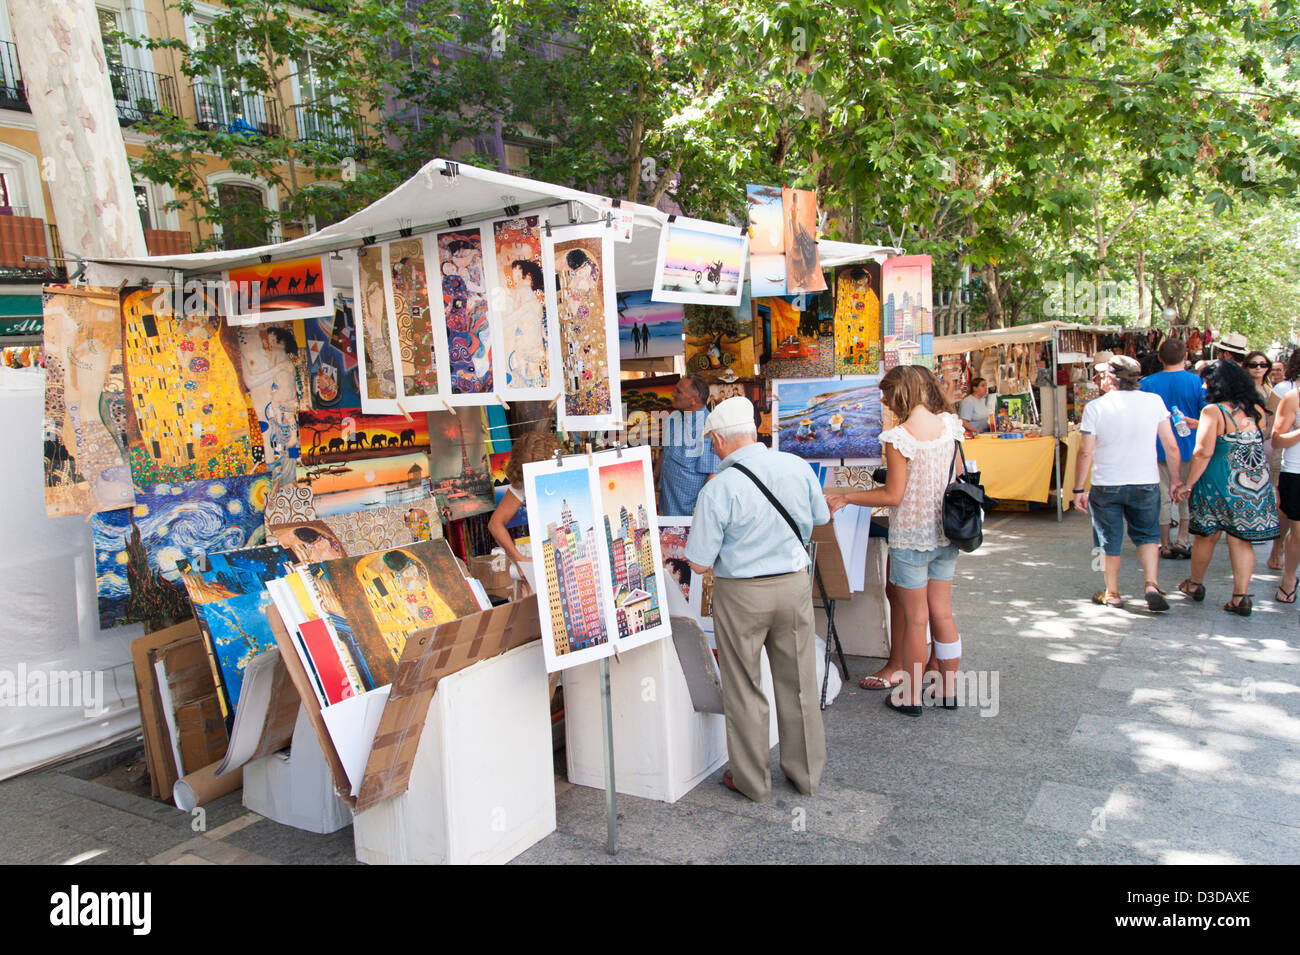 Rastro market stall selling art prints la latina madrid for Sell art prints online